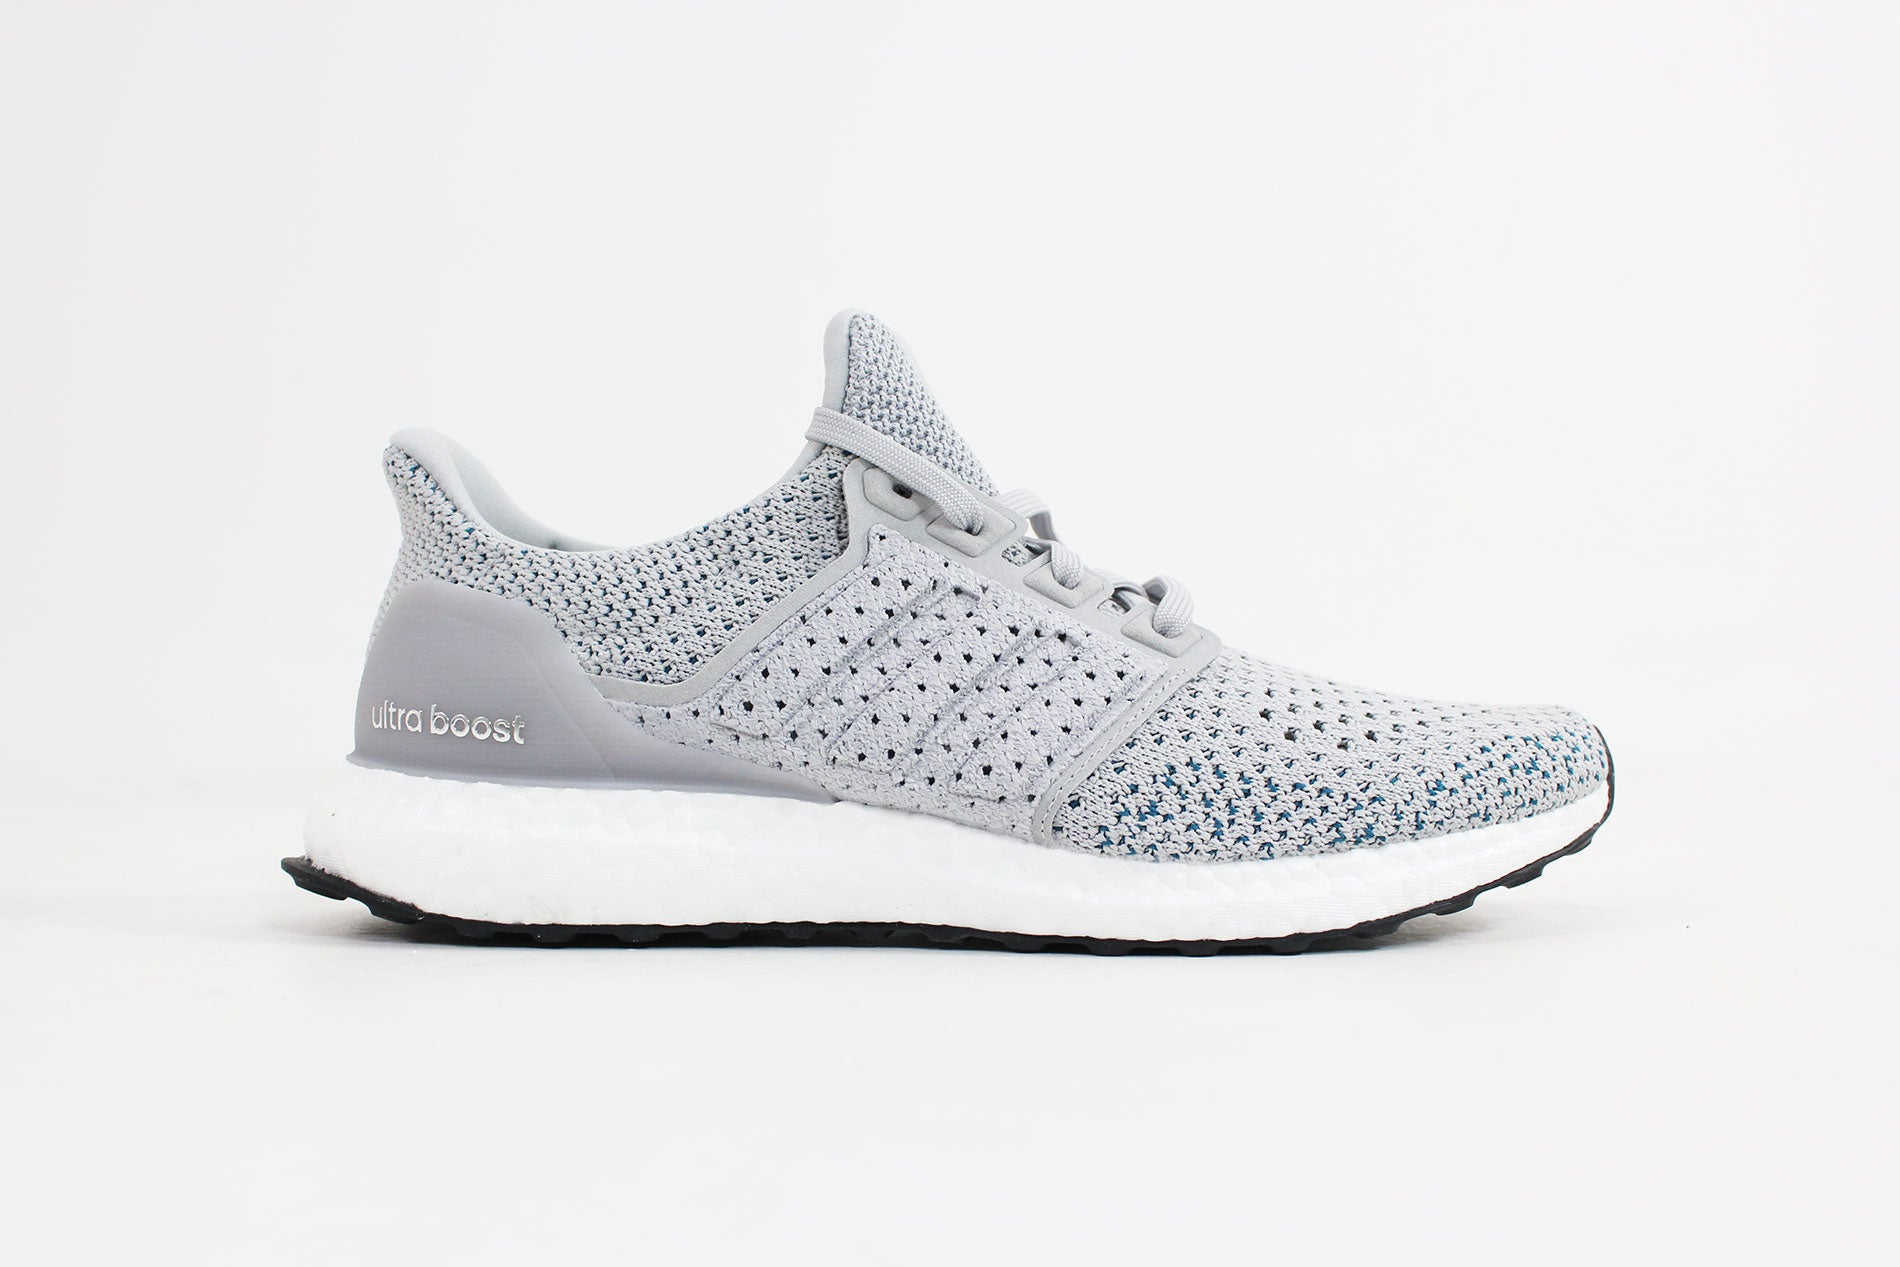 Adidas -Ultraboost Clima (Greytwo/ Gretwo/Reatea) BY8889